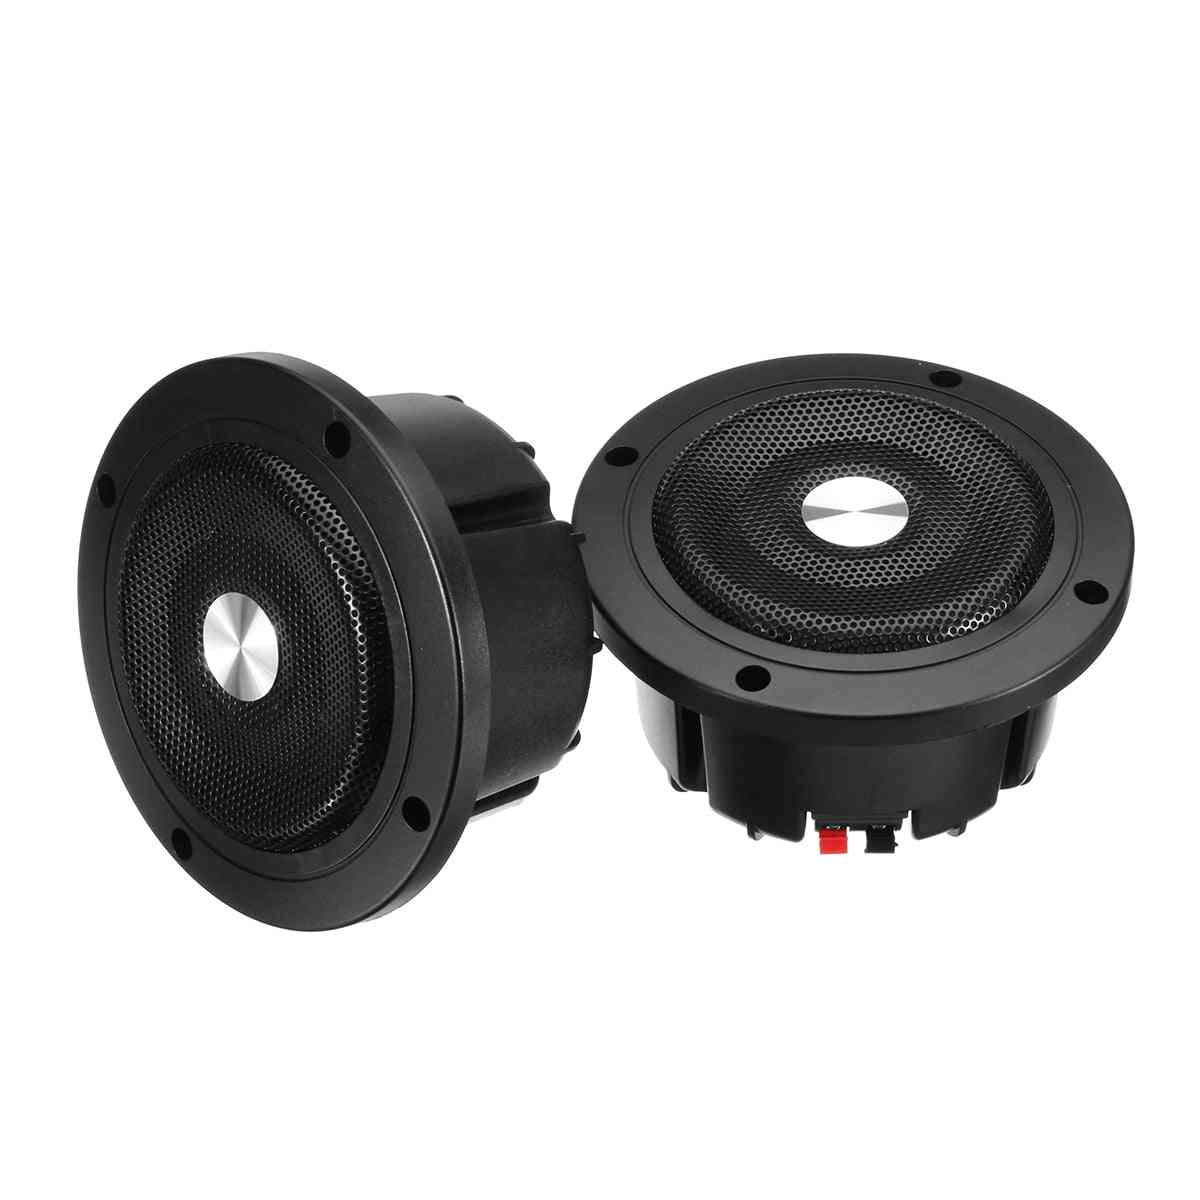 Round Ceiling In-wall Home Audio Speakers System - Flush Mount Speaker With Amplifier